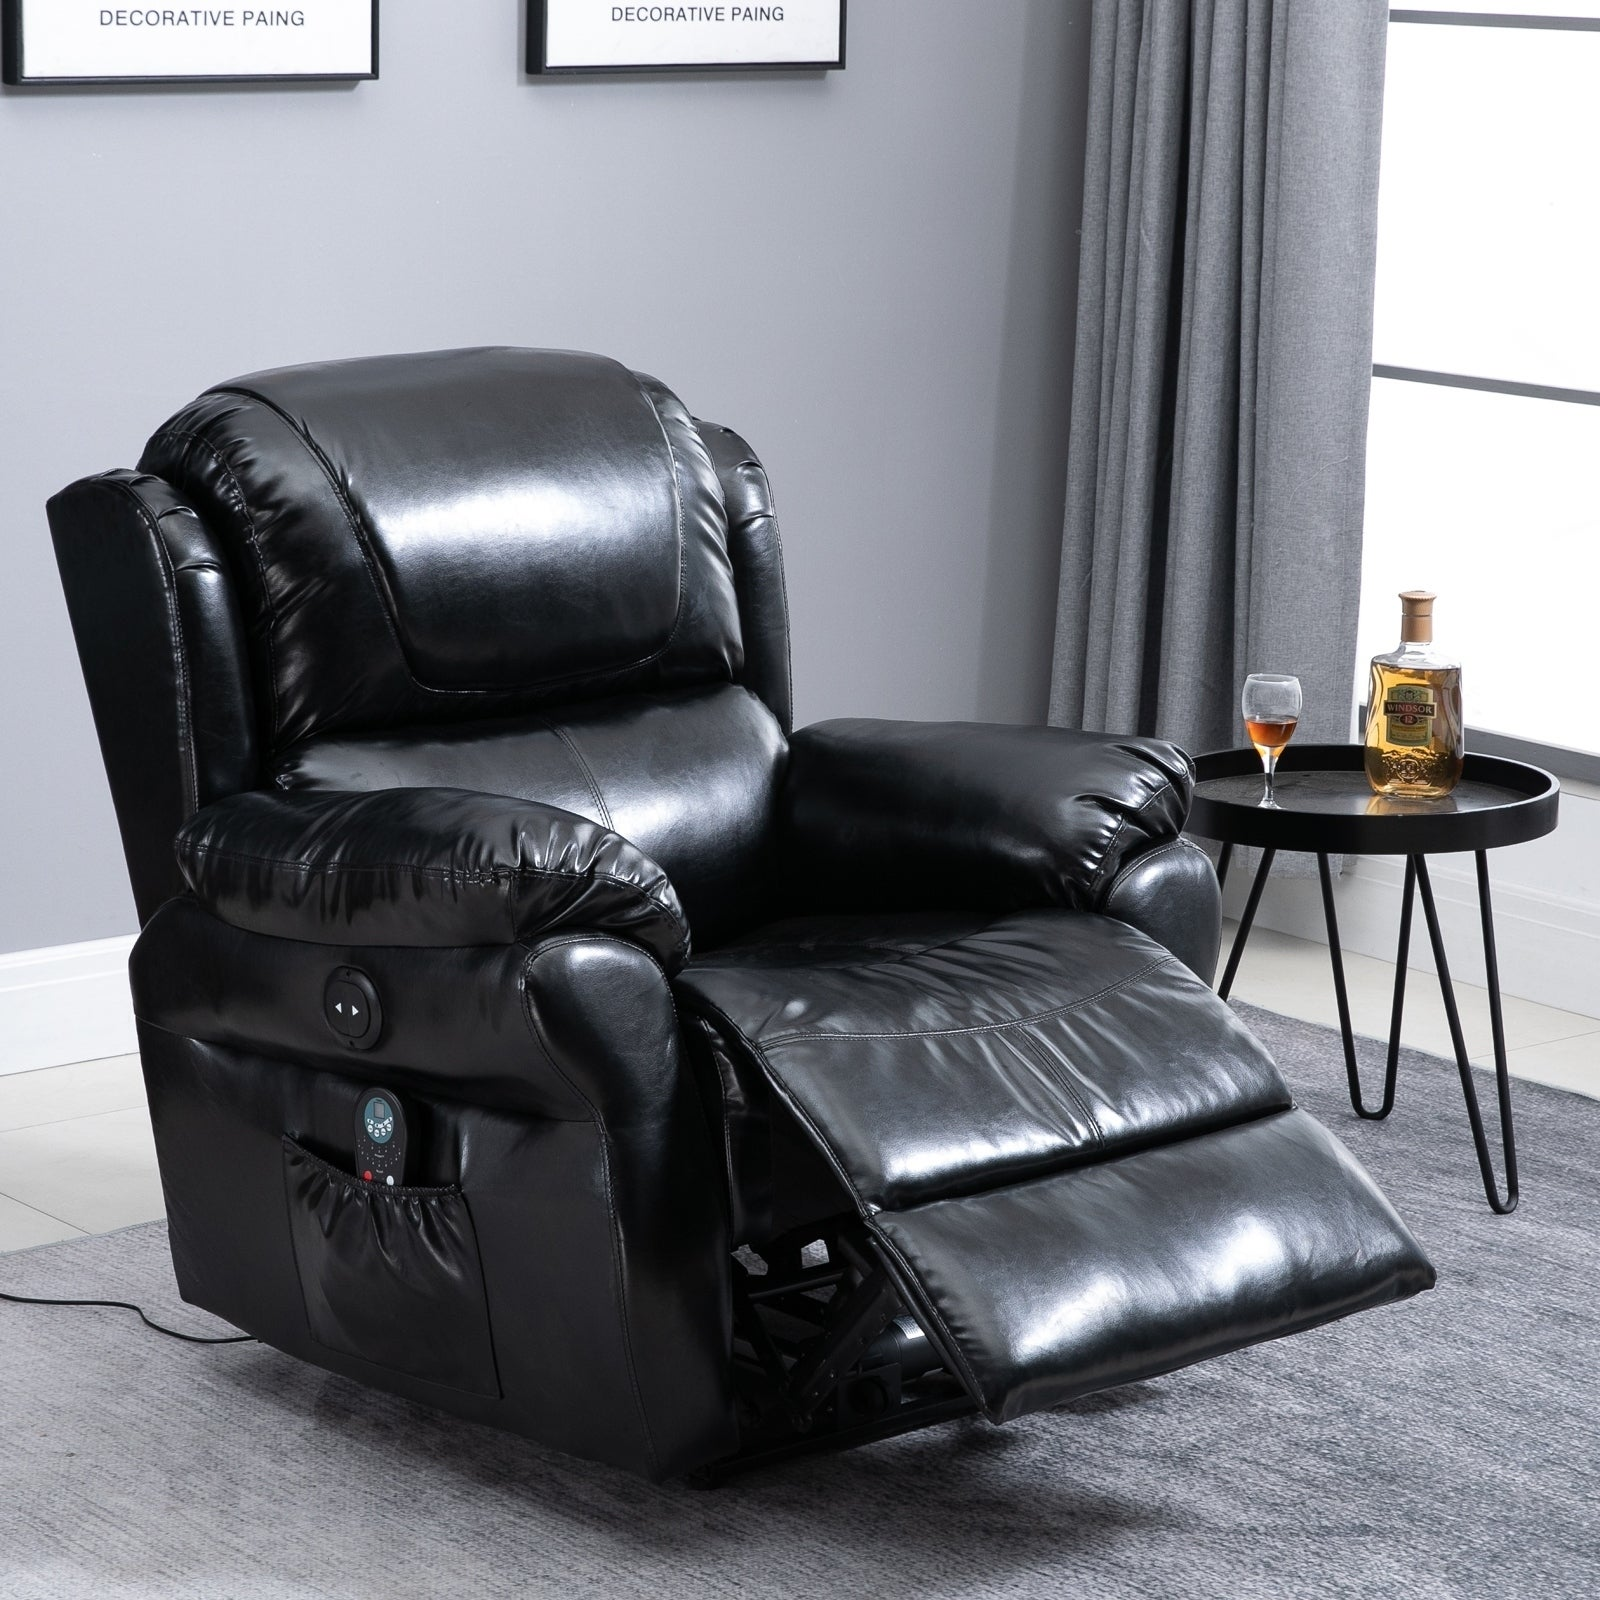 Copper Grove Steyr Power Massage Recliner Chair with Heat and Remote Control